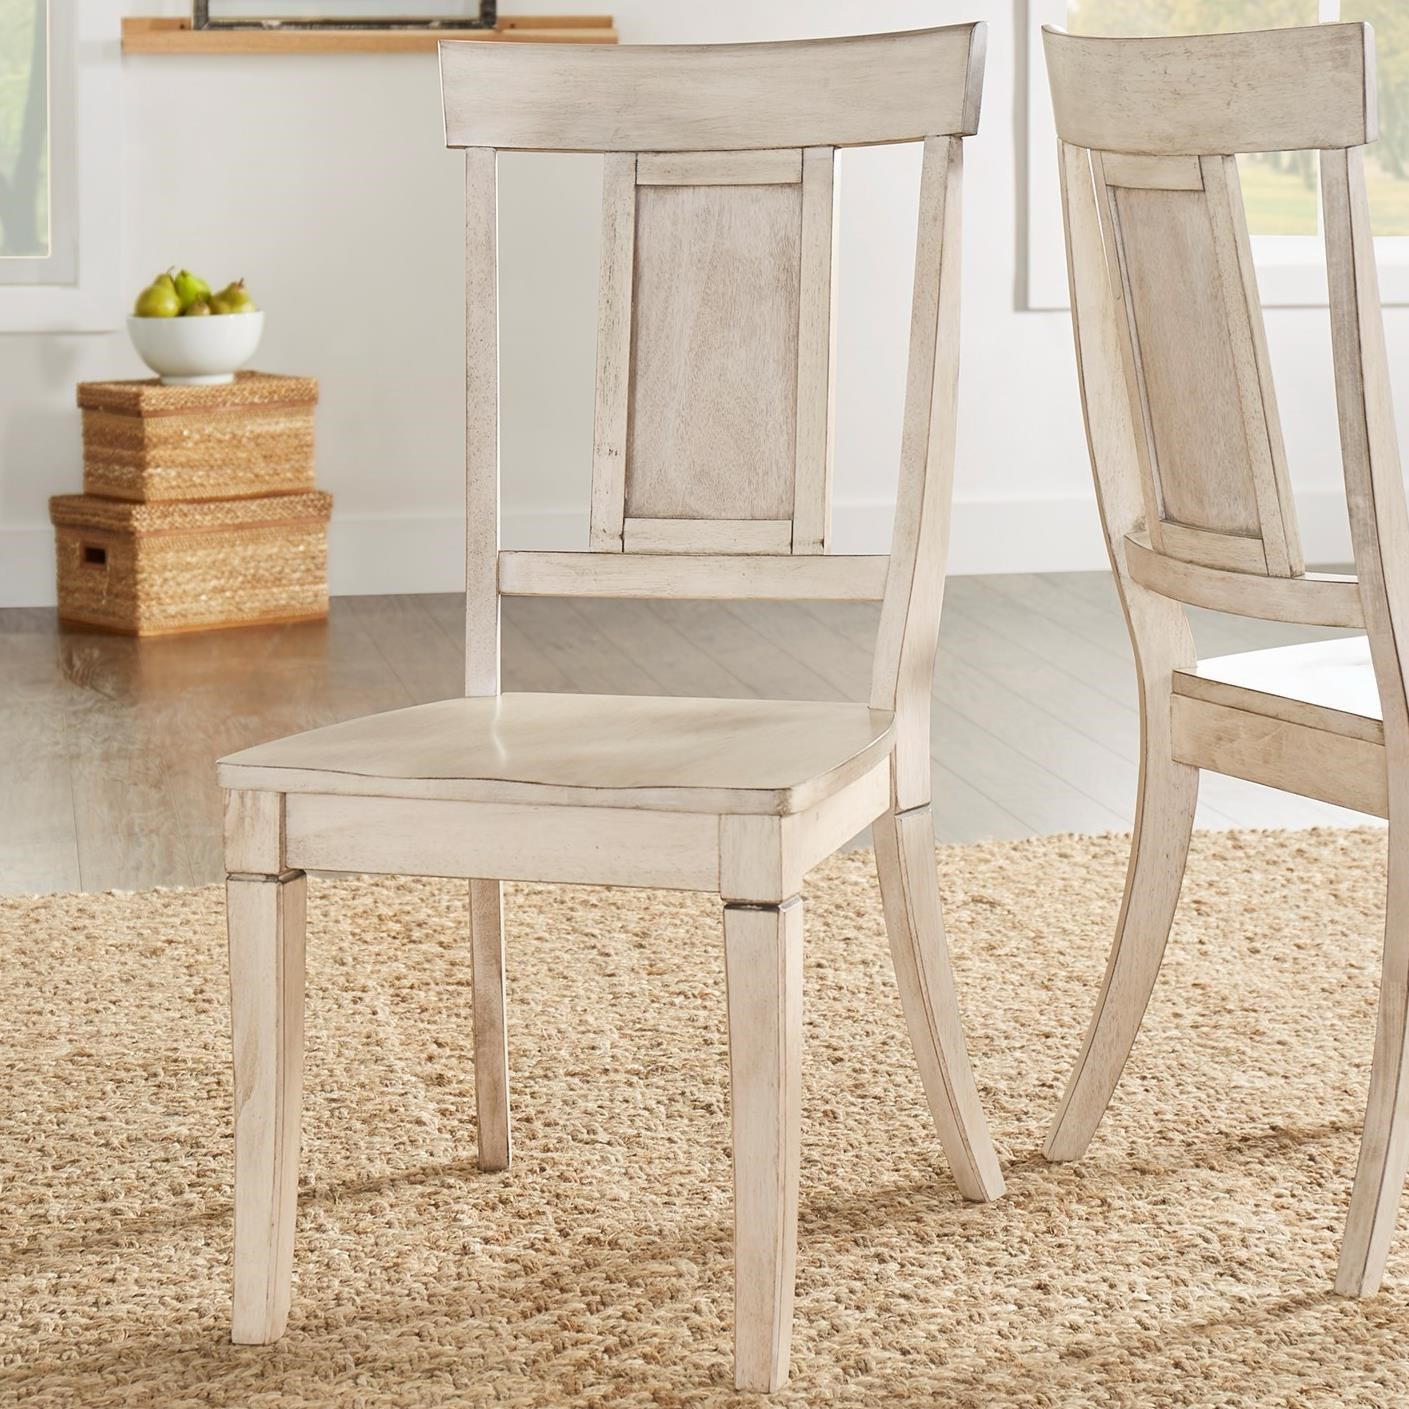 Homelegance 530 Dining Side Chair - Item Number: 530C2-WH